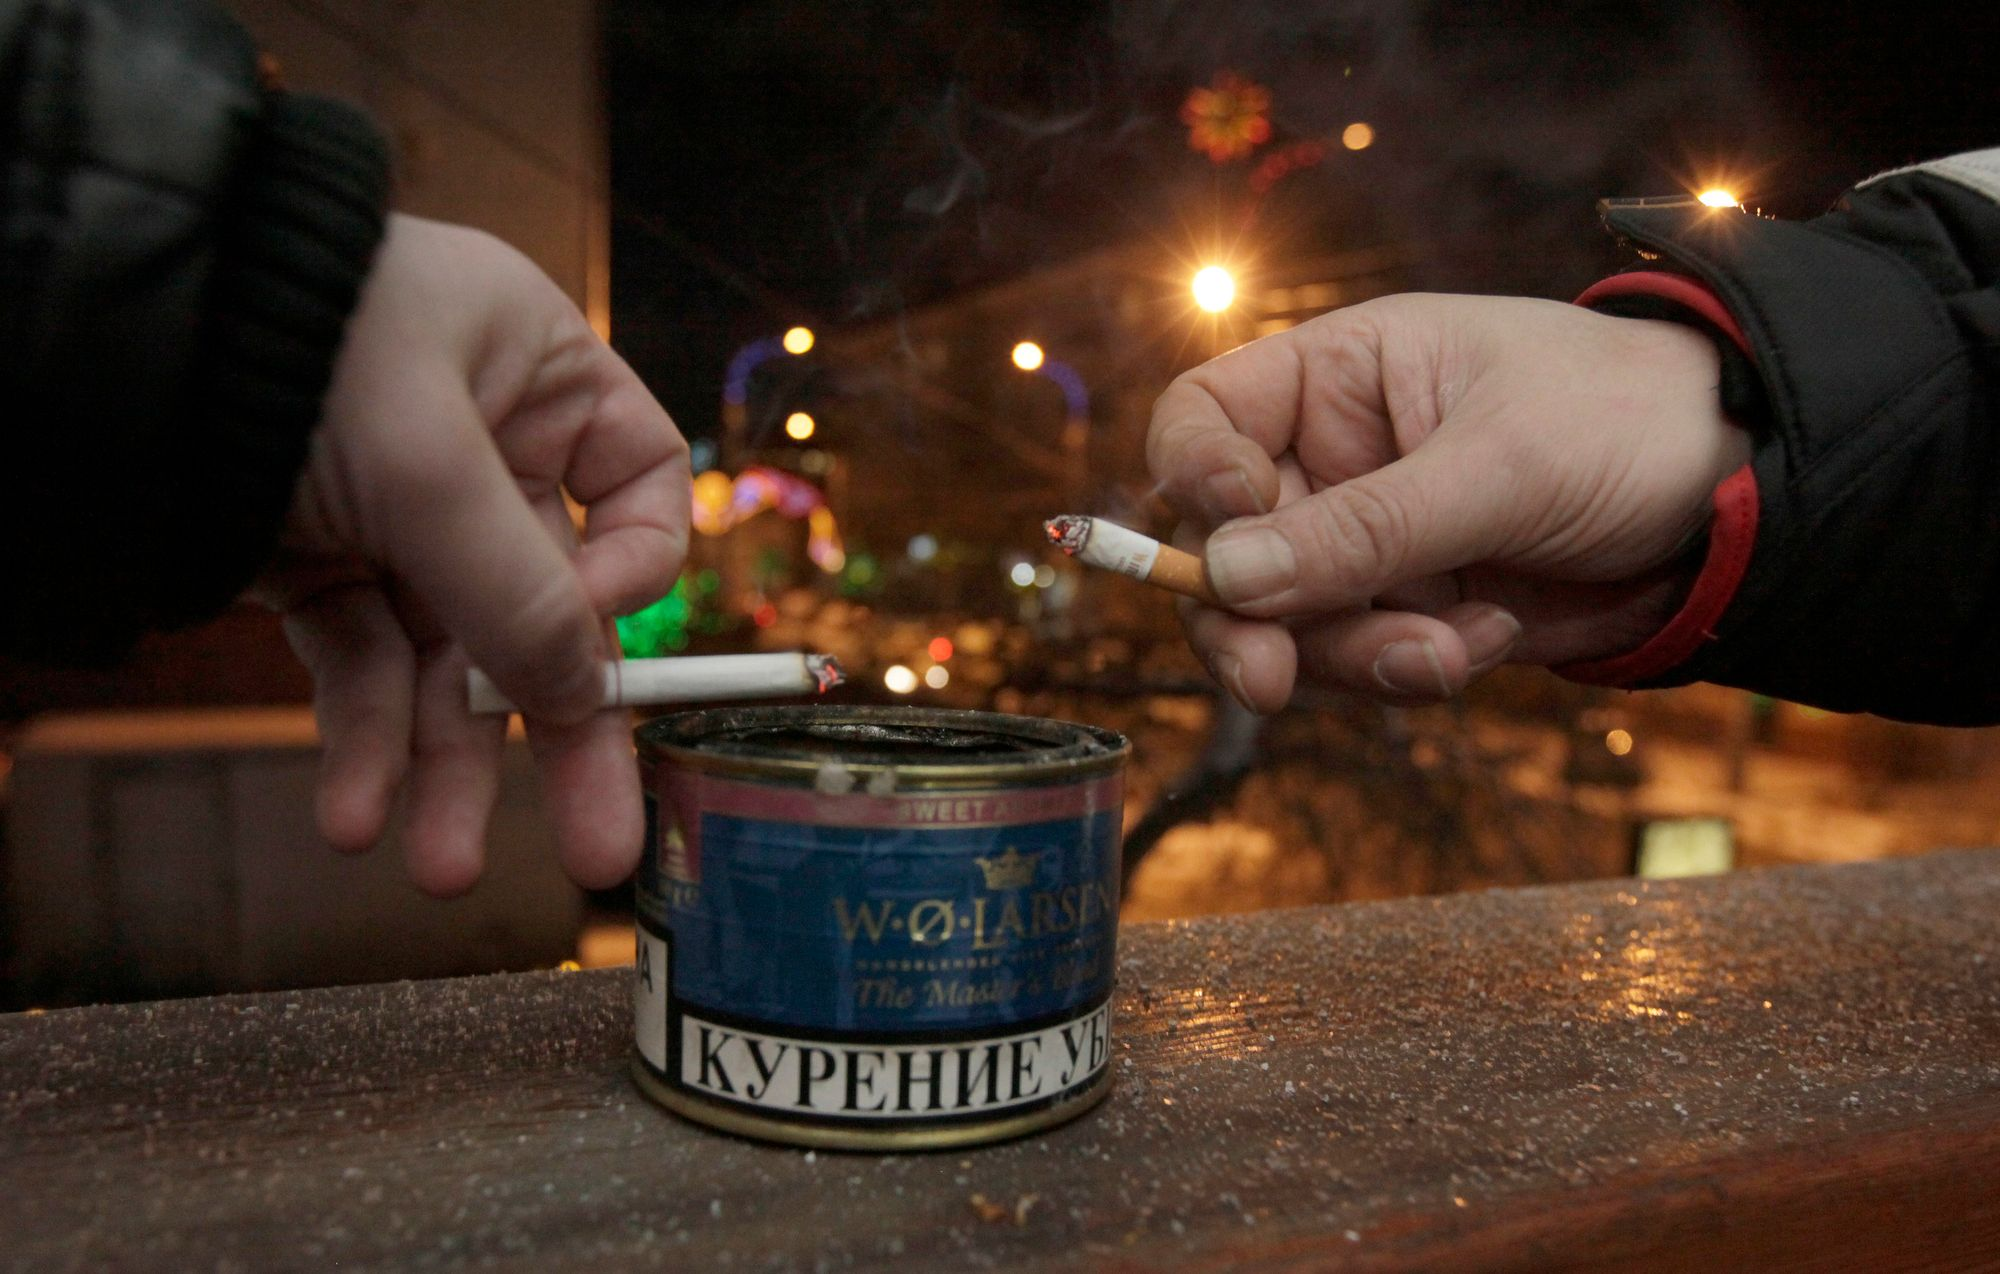 La Russie met au point un plan anti-tabac ambitieux.